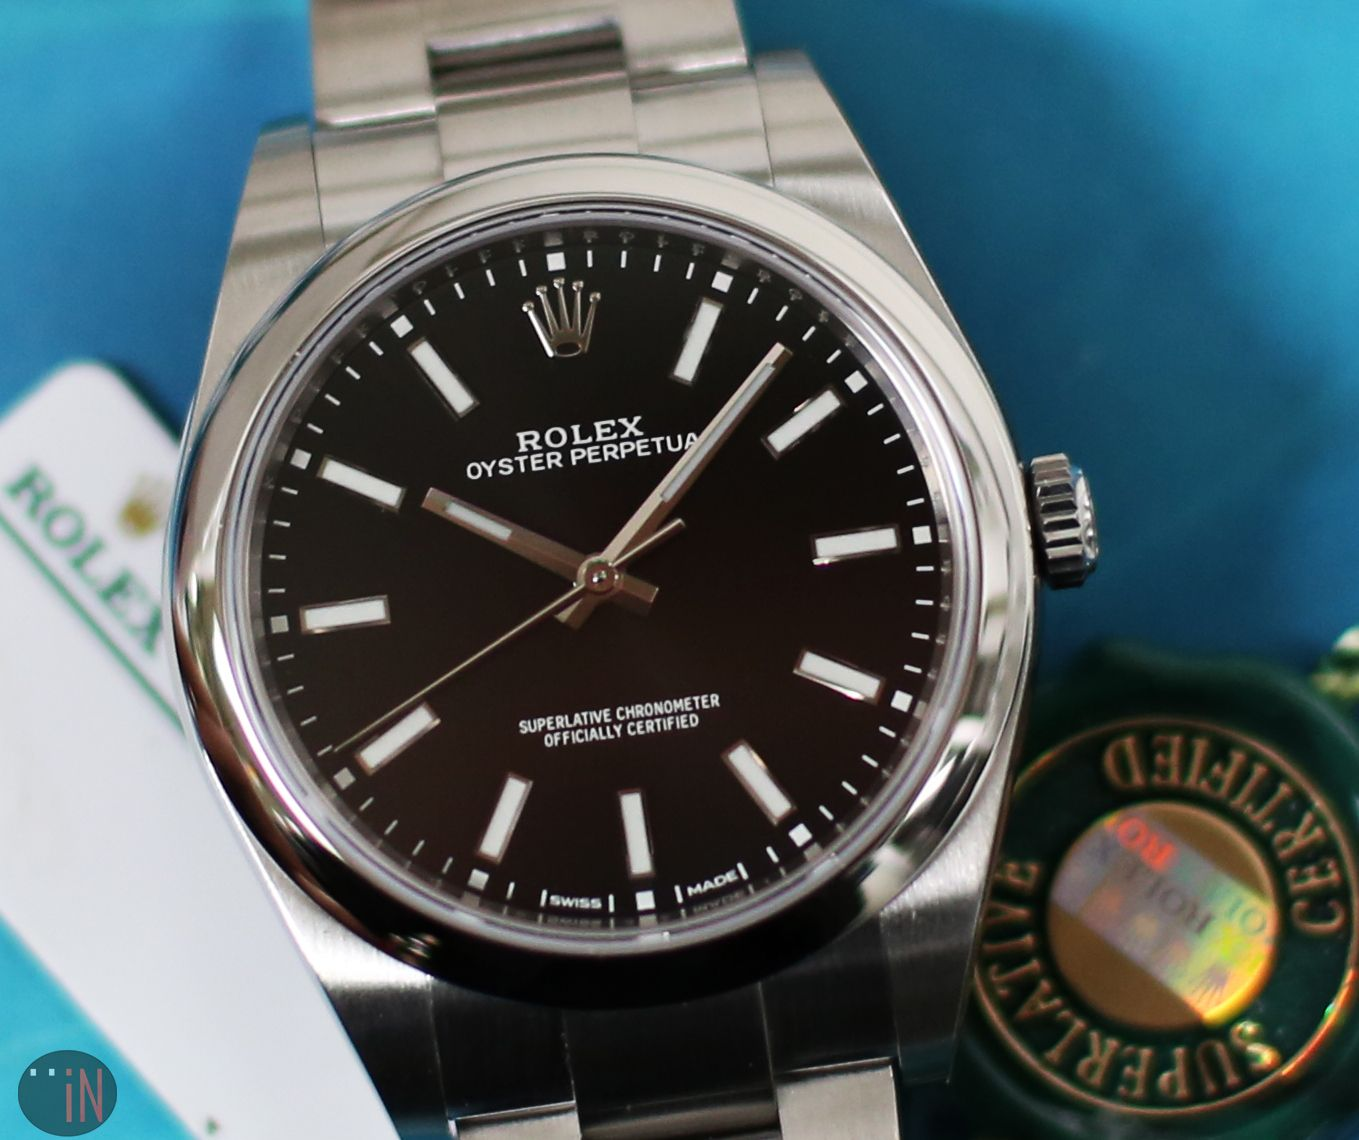 Effective Simplicity Rolex 34mm Oyster Perpetual No Date Ref 114200 Stainless Steel Black Dial Http Www Elementin Rolex Oyster Rolex Oyster Perpetual